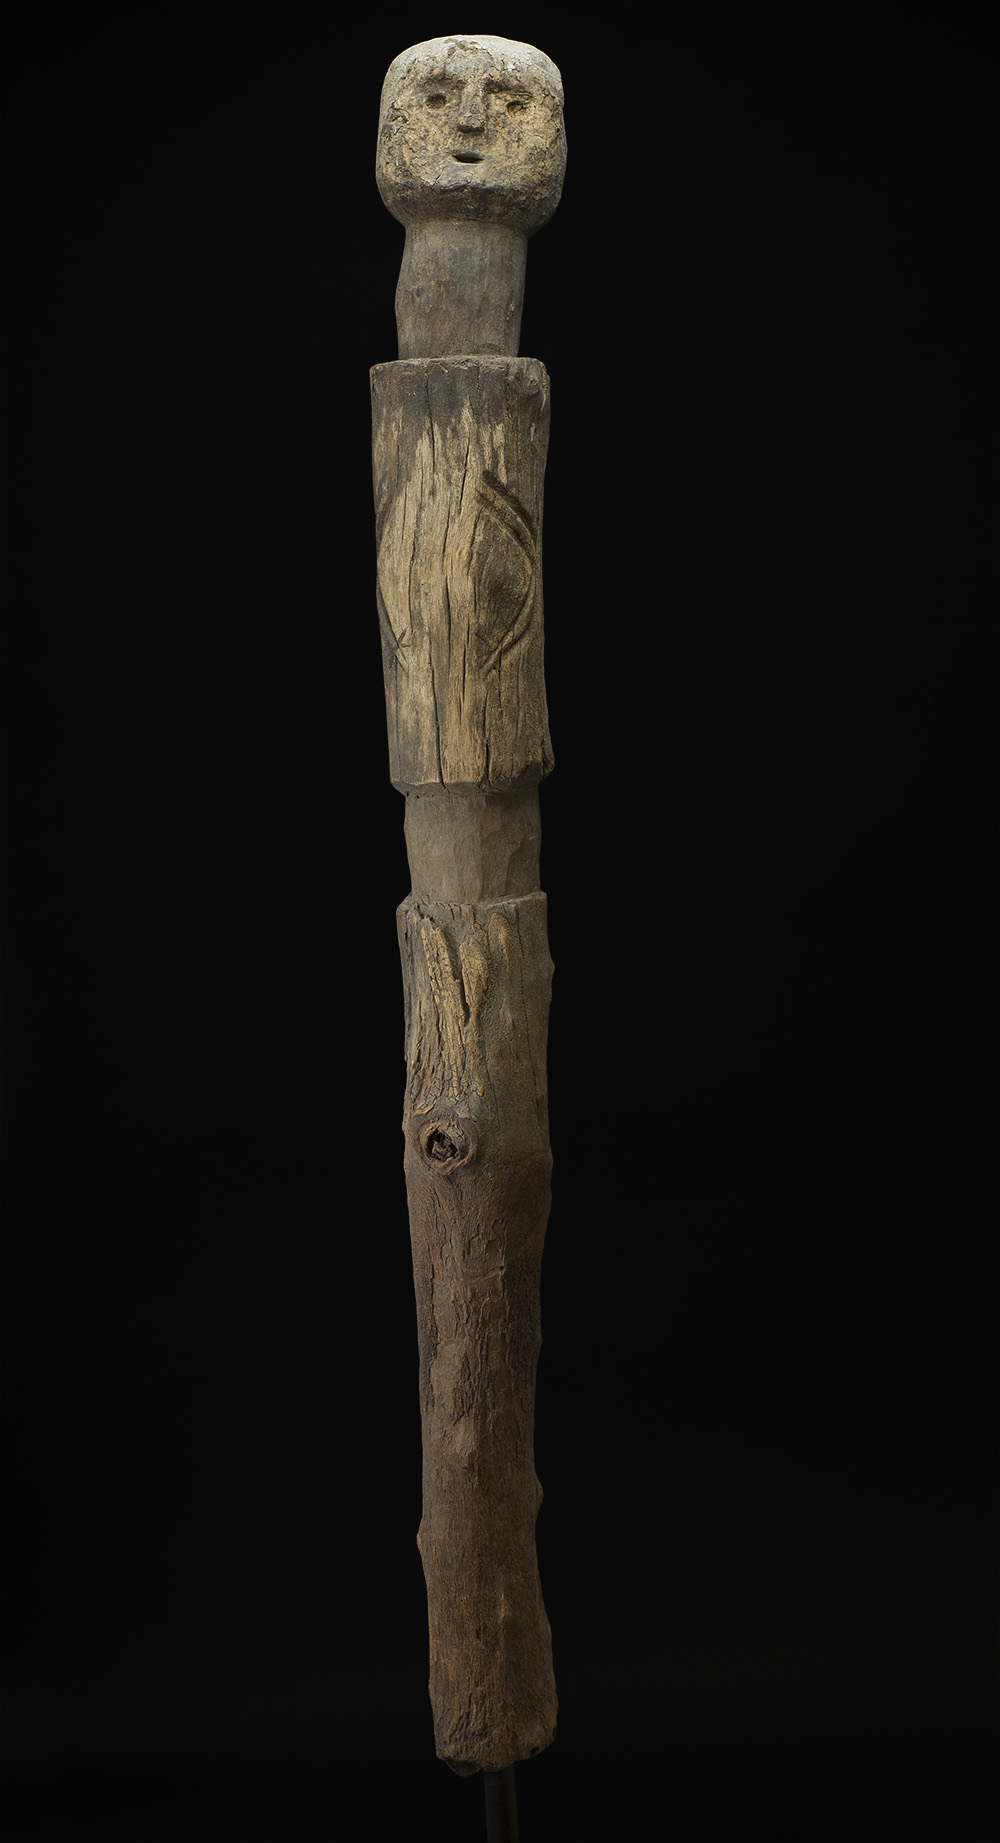 Africa    Bocio - Ewe People - Togo  , Early 20th C. Wood, sacrificial materials 60.5 x 6 x 6 inches 153.7 x 15.2 x 15.2 cm Af 301